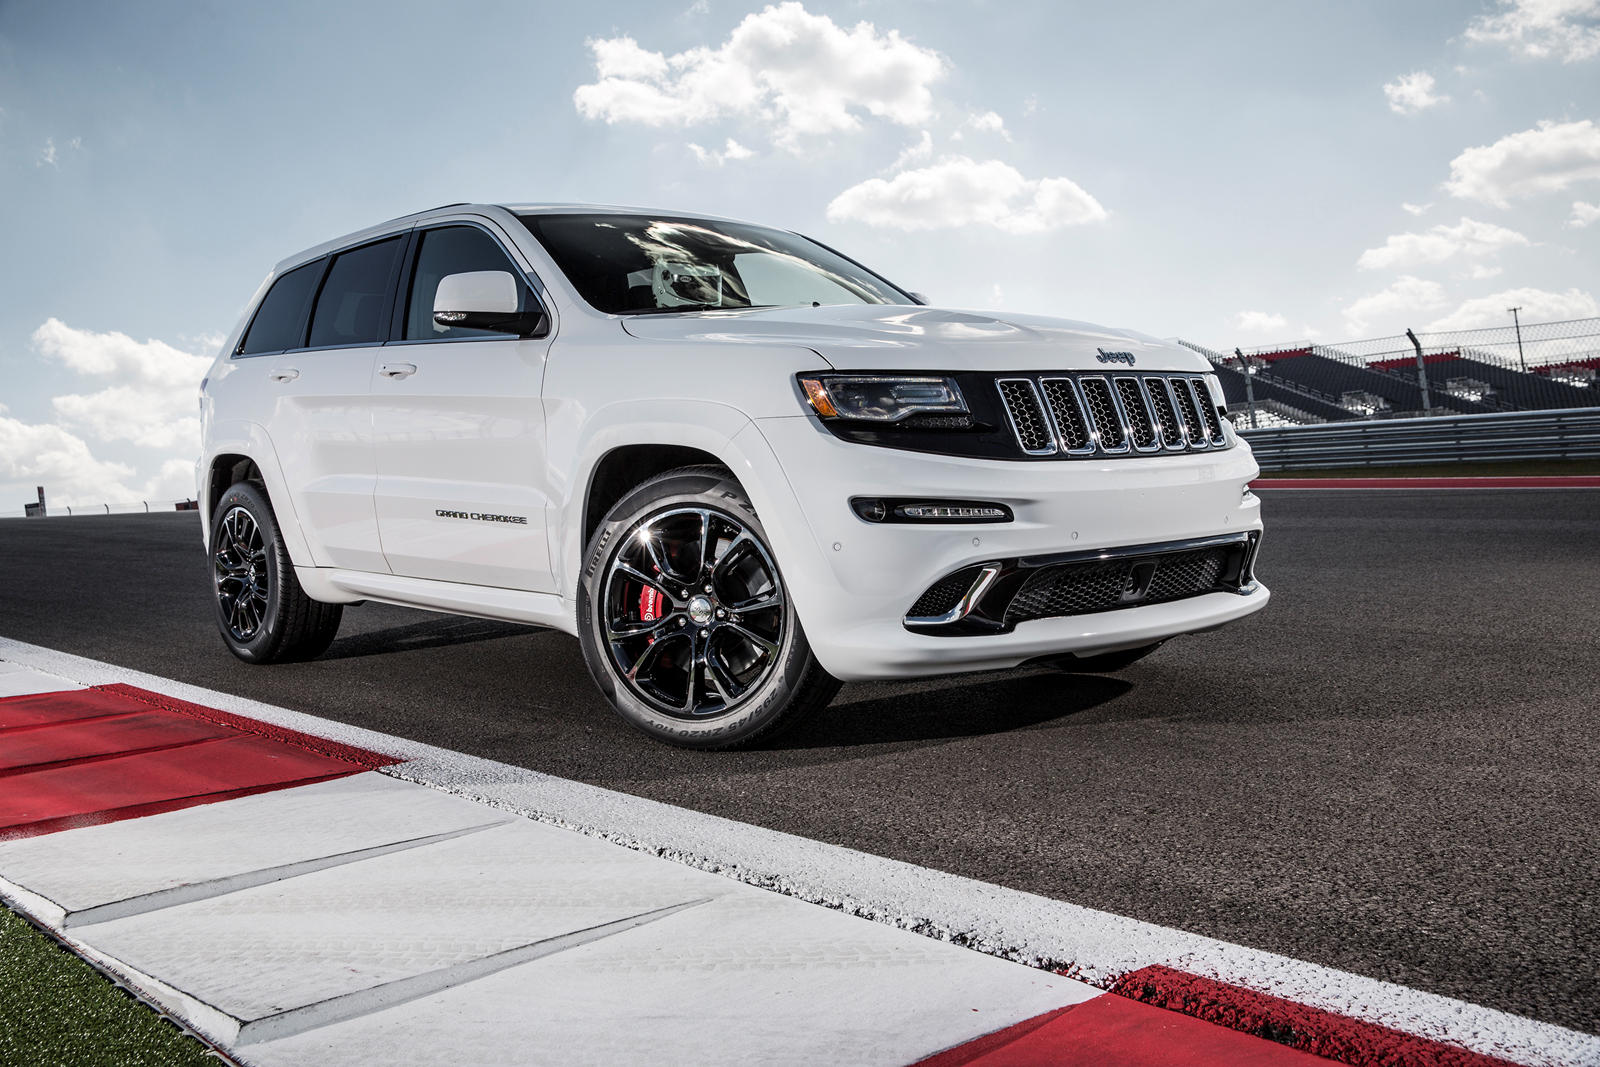 The Jeep Grand Cherokee Srt 8 Is Your Budget Family Dragster Carbuzz